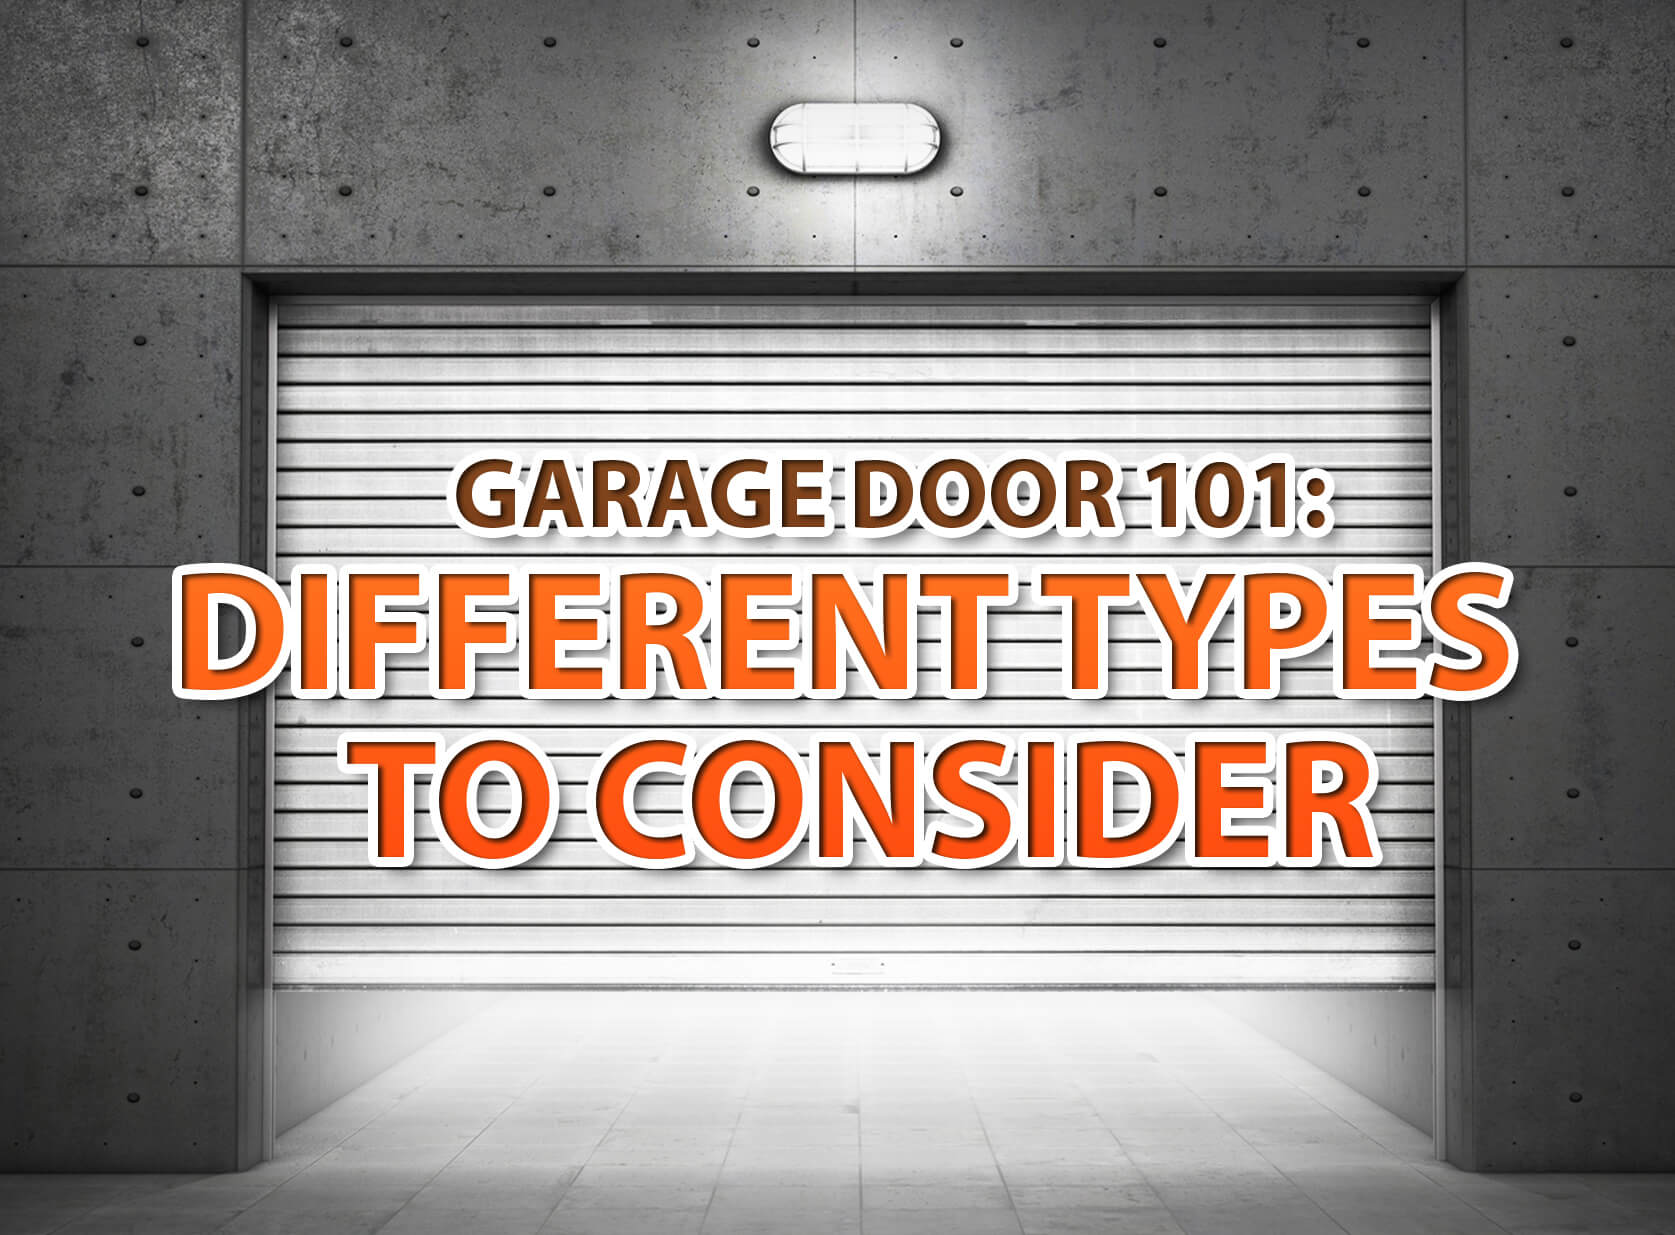 Amazing Garage Door 101: Different Types To Consider